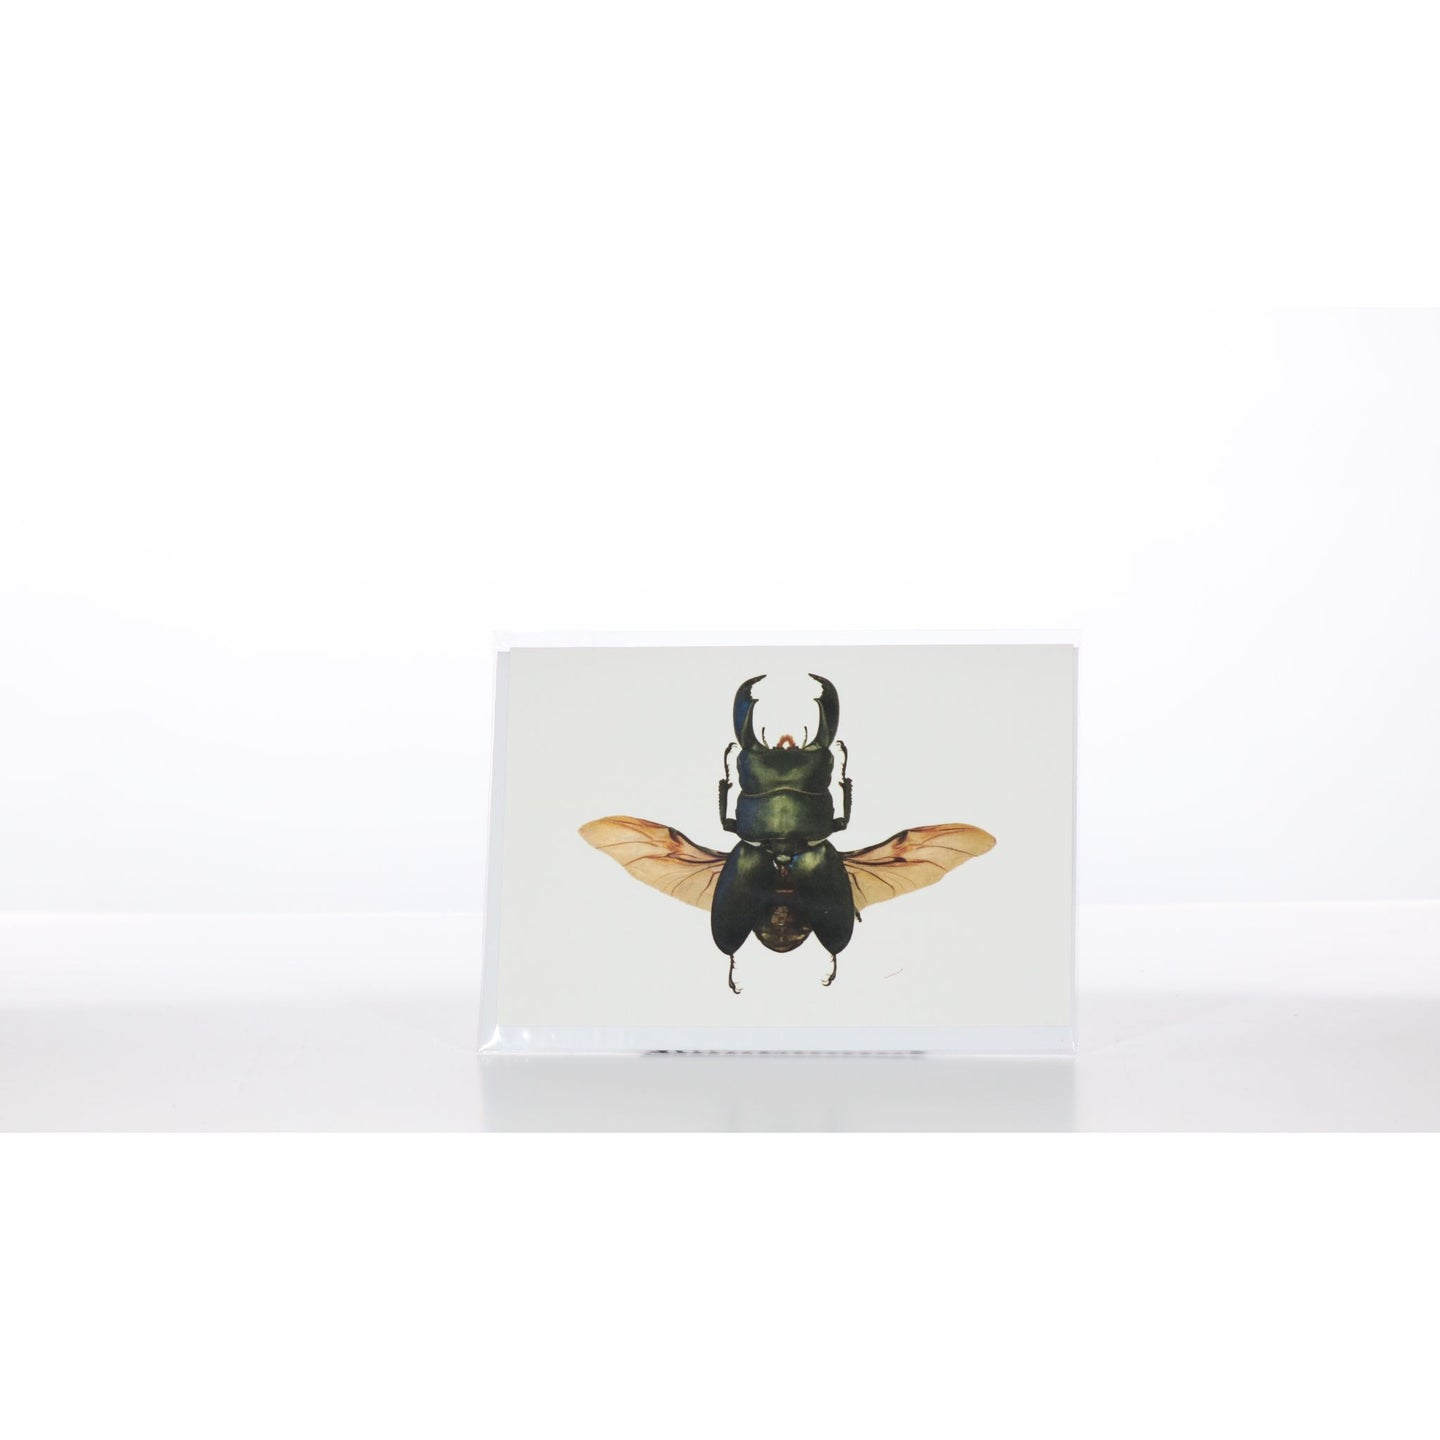 Greeting Card GC33 - Insecta Etcetera